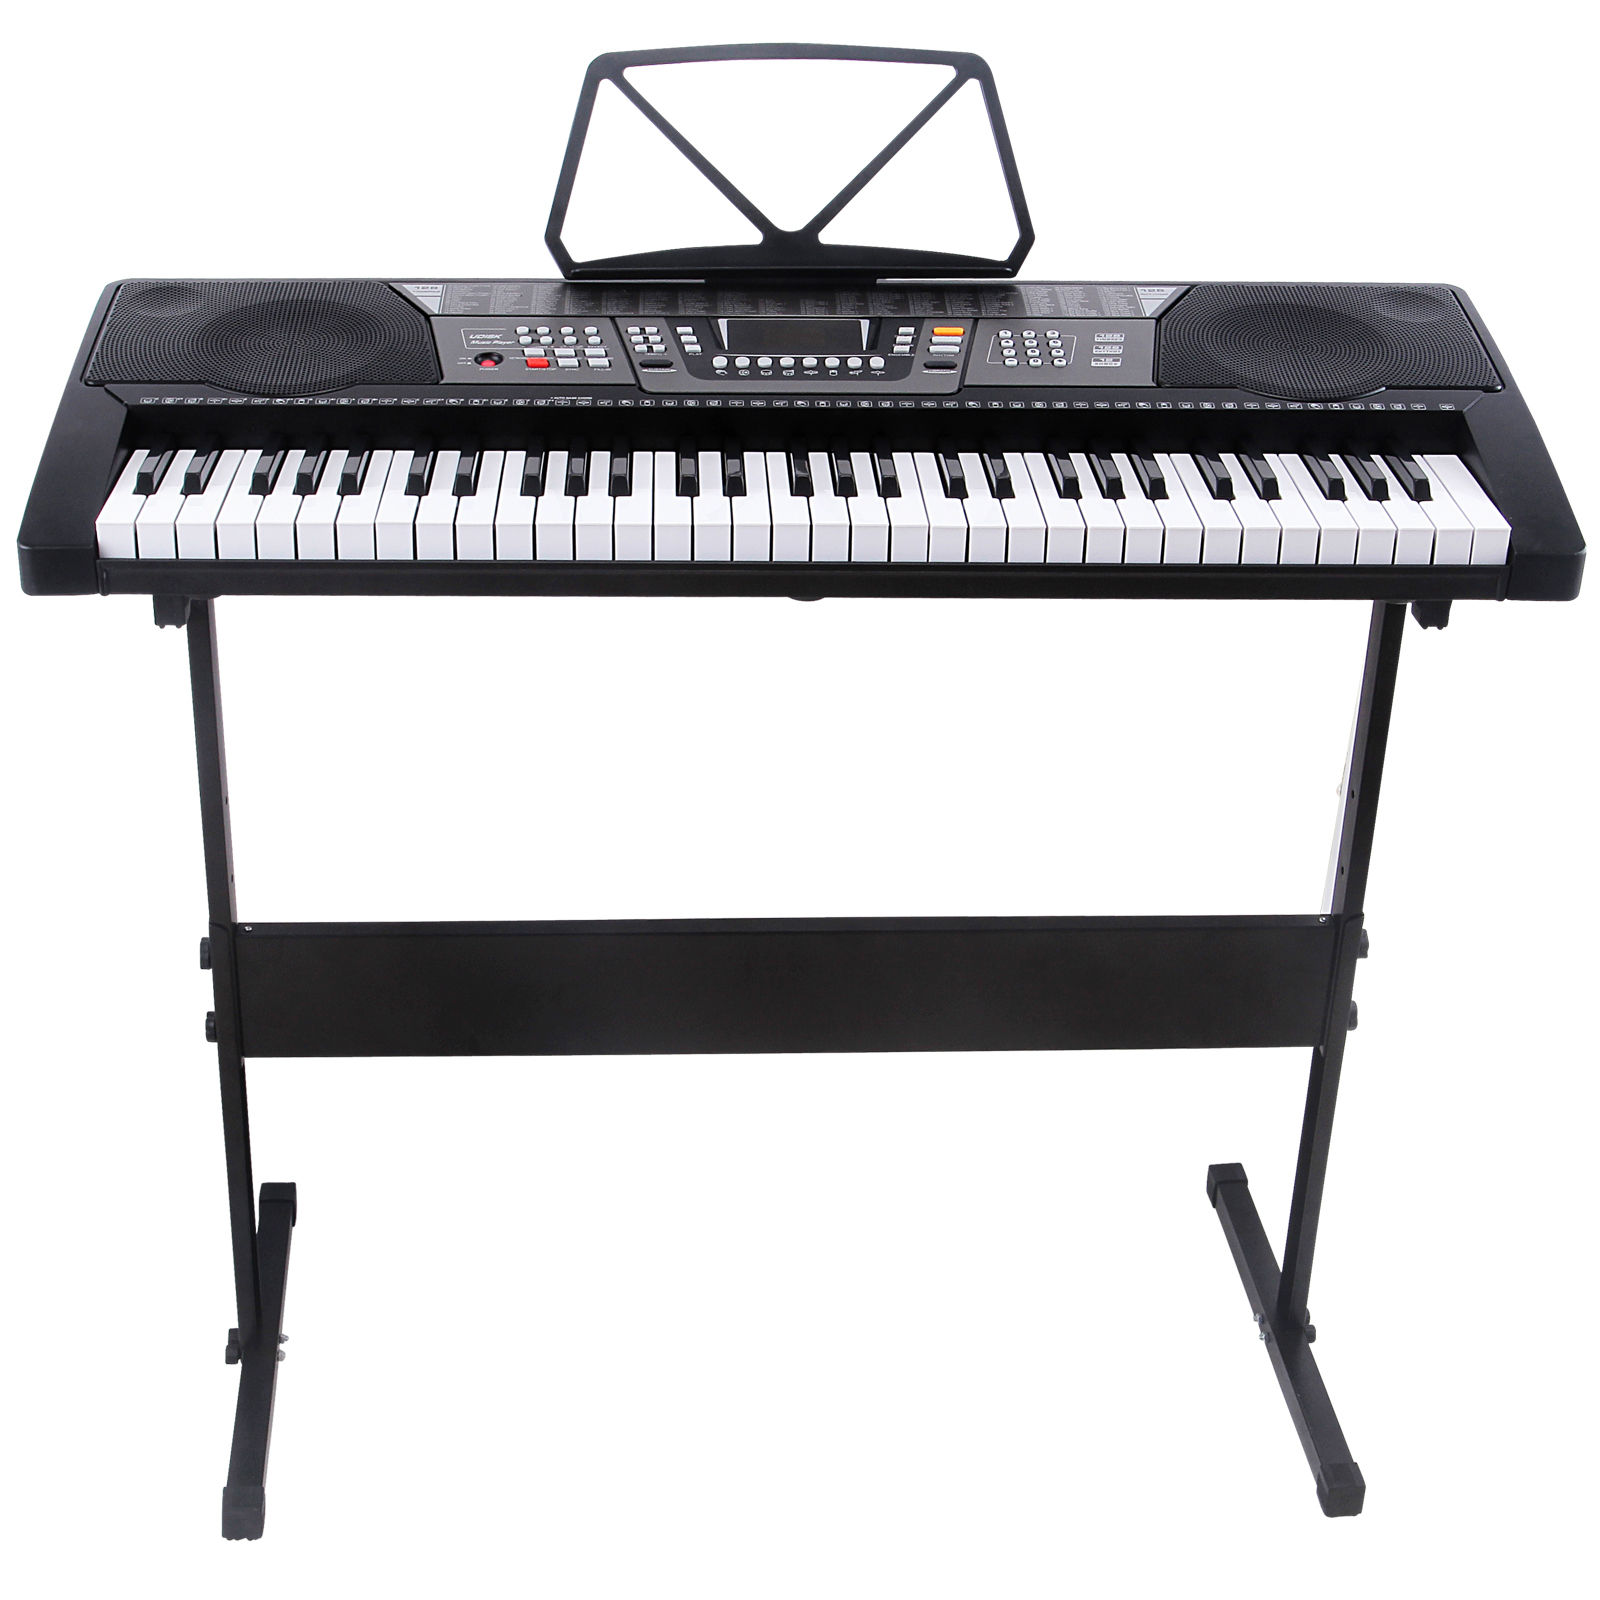 Uenjoy 61-Key Electronic Piano Electric Organ Music Keyboard with Stand - Black